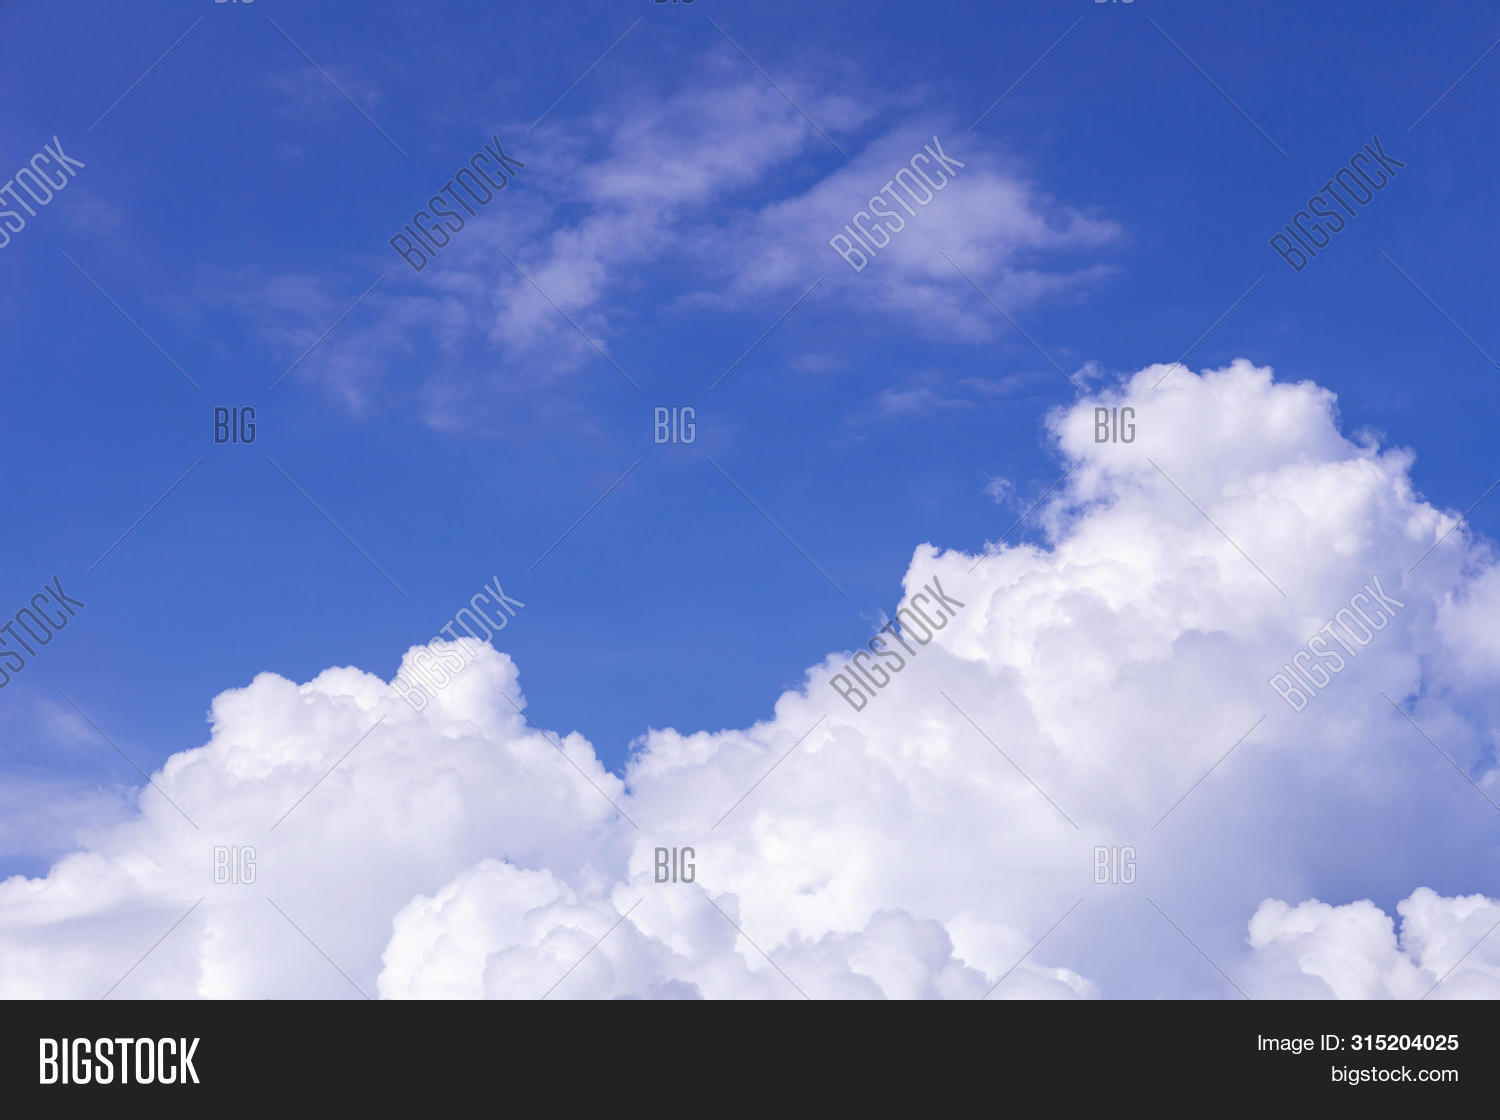 abstract,air,atmosphere,background,backlight,beam,blue,bright,clear,climate,clouds,color,day,dramatic,fantastic,freedom-sky,heavens,high,horizon,landscape,light,natural,nature,outdoors,overcast,ray,scenic,sky,sky-background,sky-clouds,sky-landscape,sky-nature,sky-scene,sky-space,sky-view,skyscape,summer,sun,sunbeam,sundown,sunlight,sunny,sunrise,sunset,sunshine,vast,vast-sky,view,weather,white